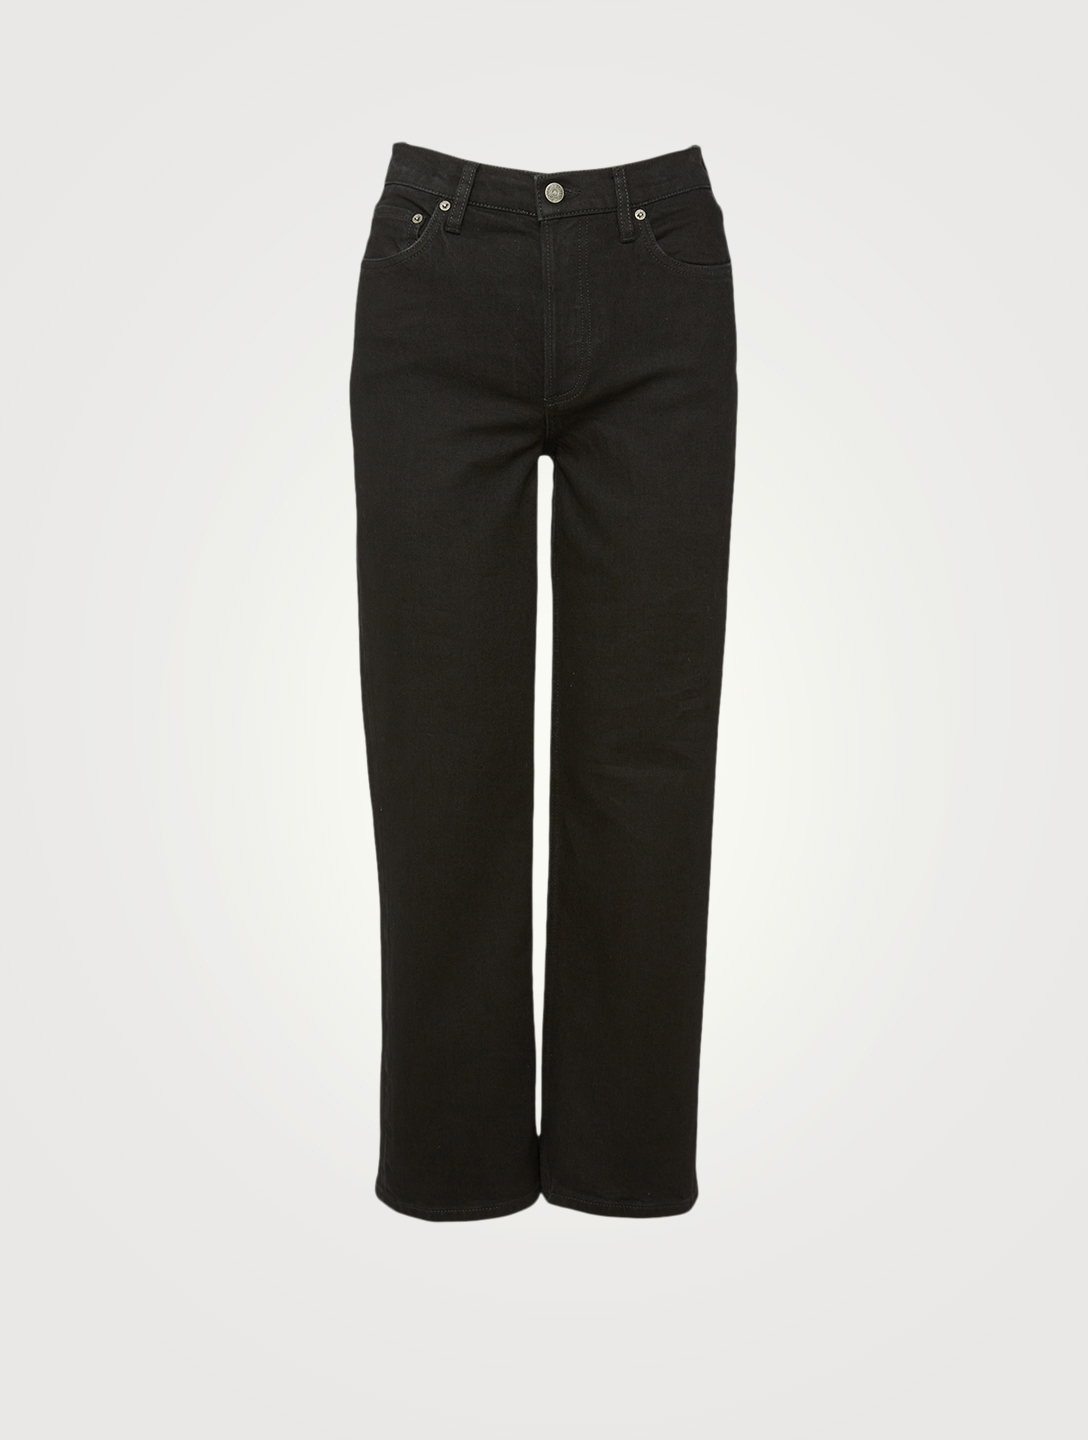 BOYISH Mikey High-Waisted Wide-Leg Jeans Women's Black